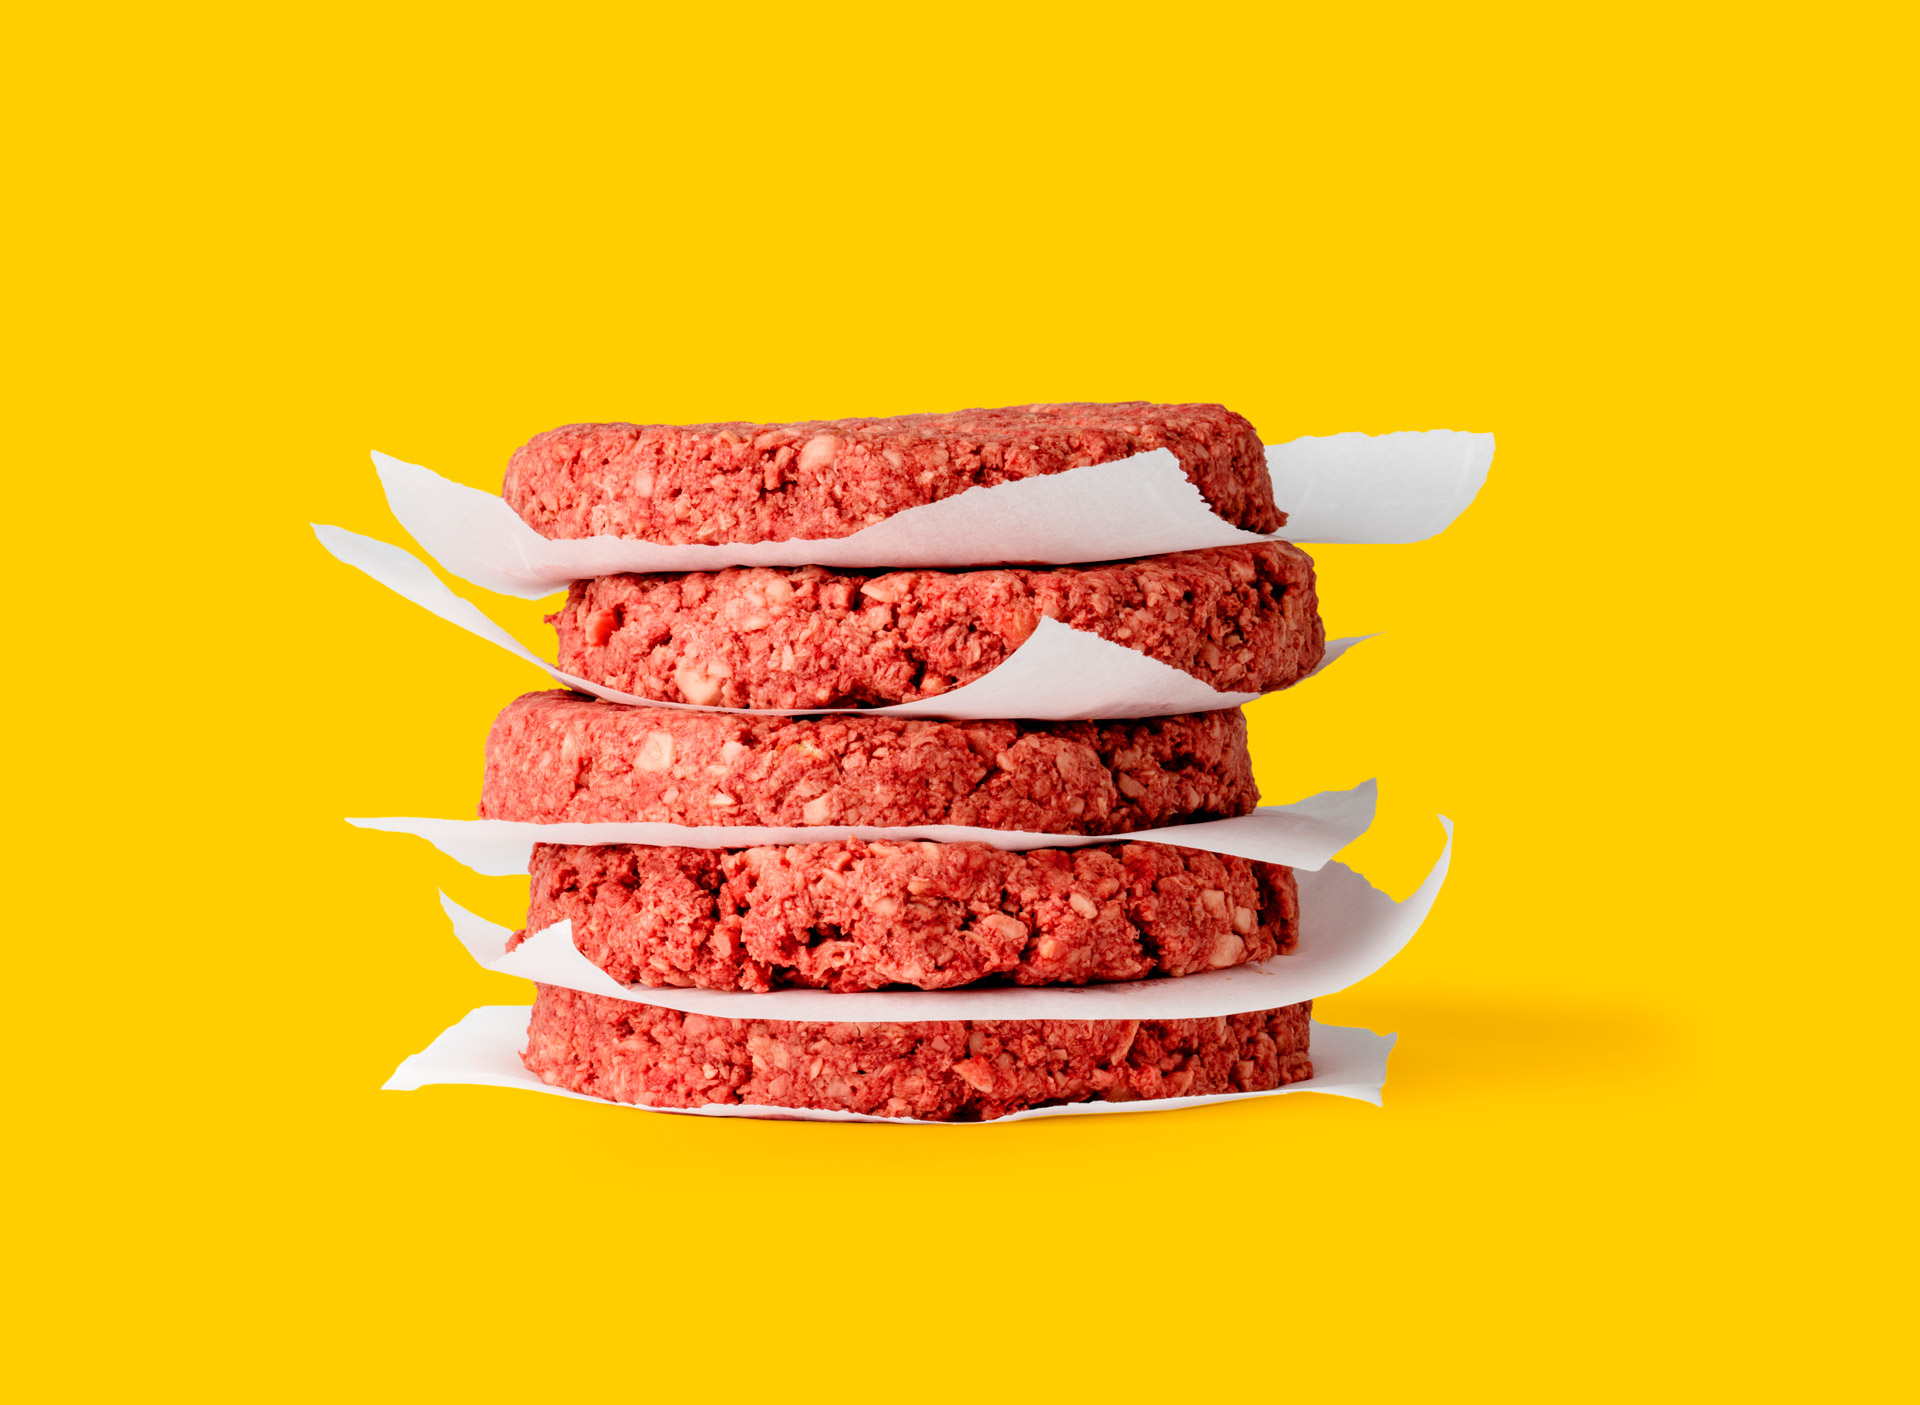 Meat revolution: The Impossible Burger